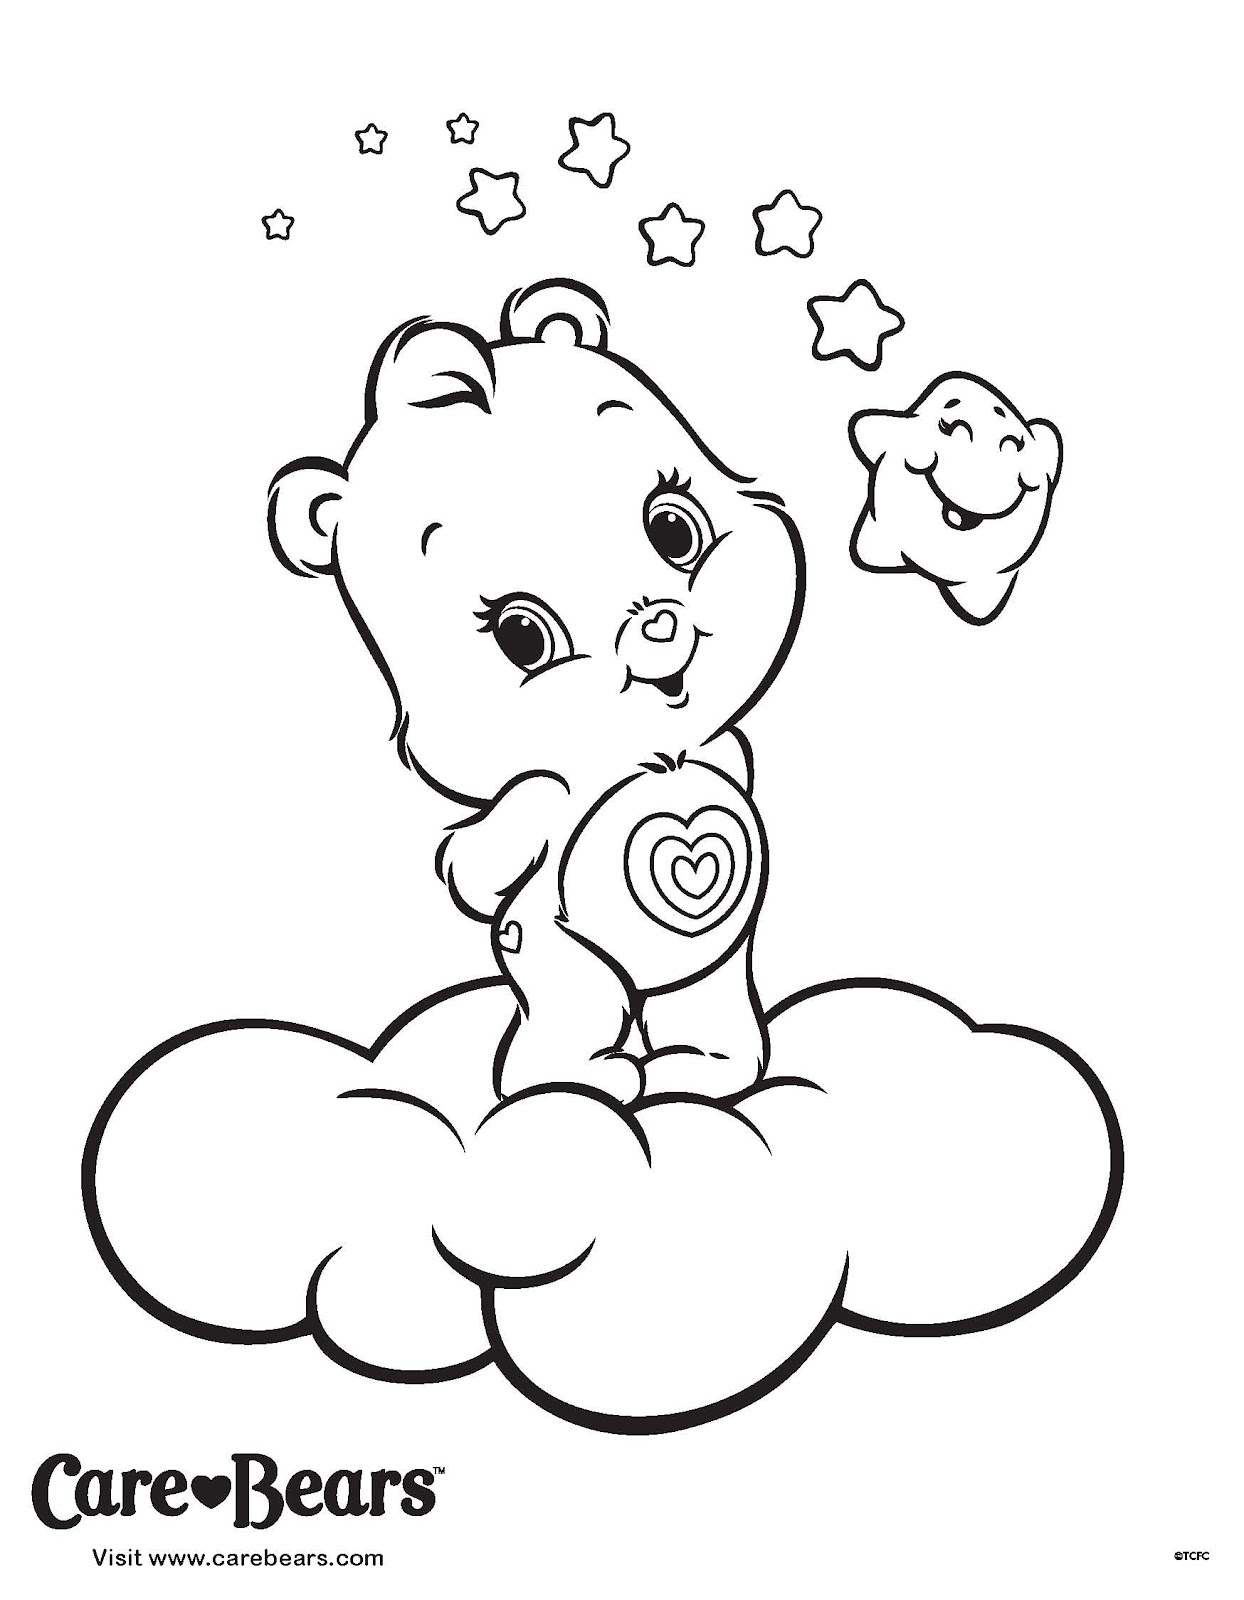 Care Bear Drawing at GetDrawings.com | Free for personal use Care ...